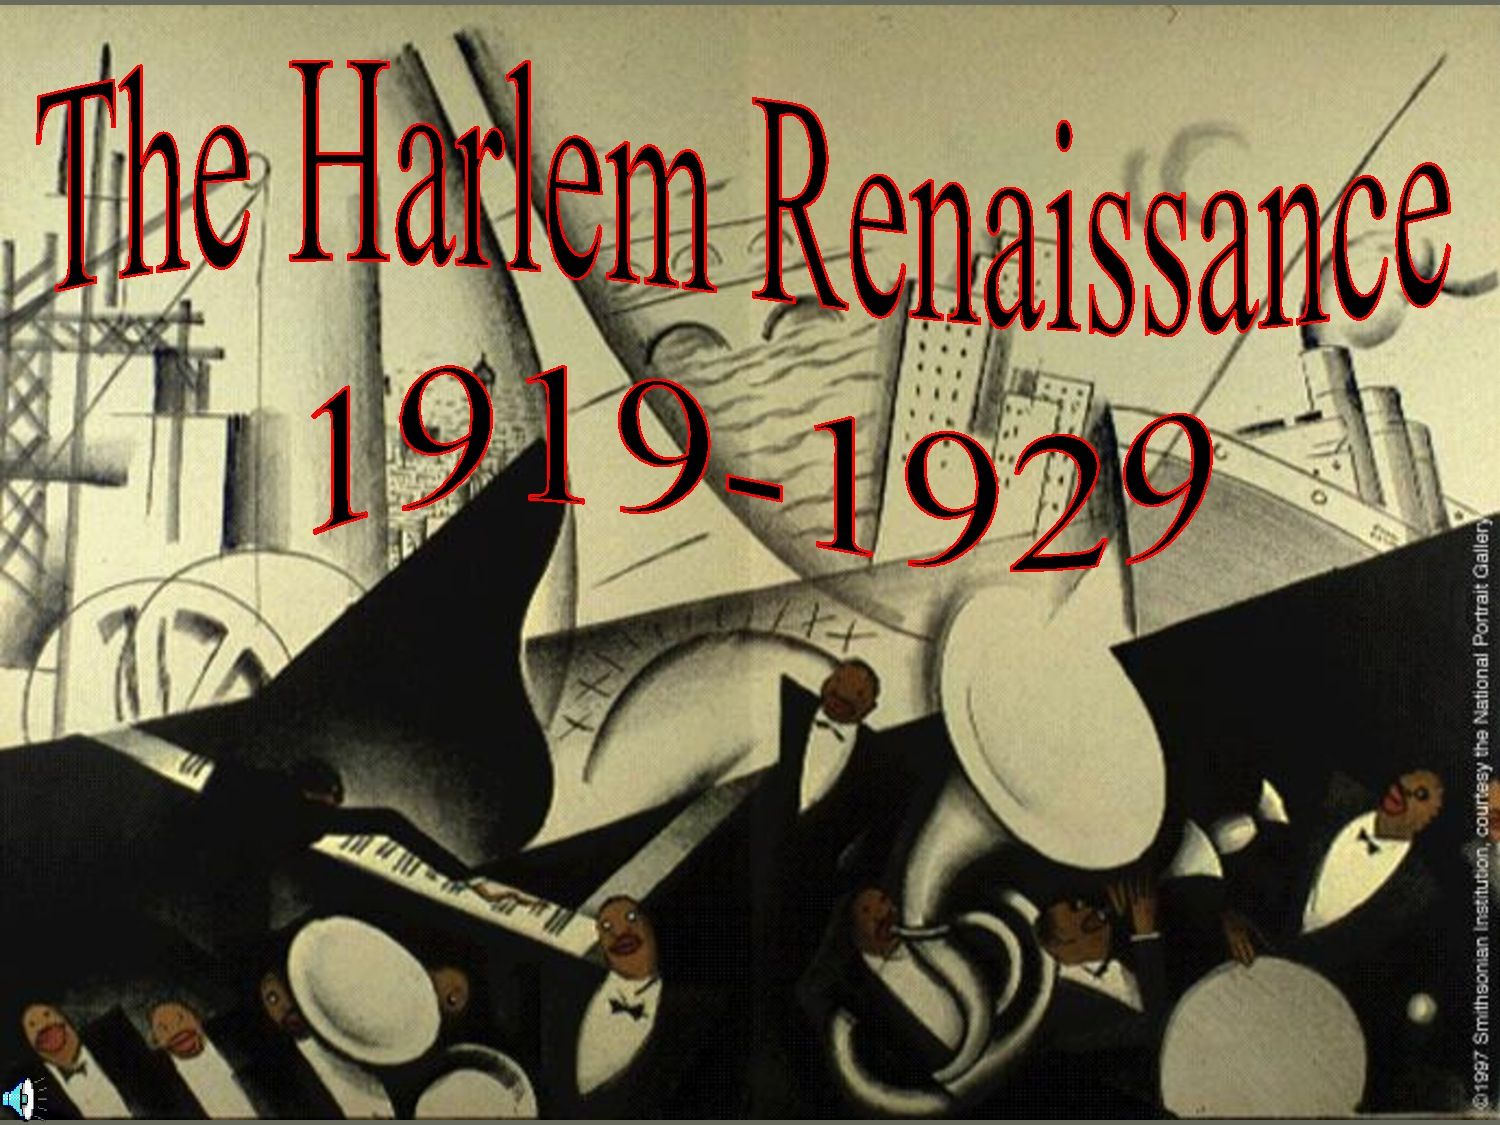 the literature of the harlem renaissance essay Describe two or three major themes that emerged in the art and literature of the harlem renaissance harlem renaissance essay topics.